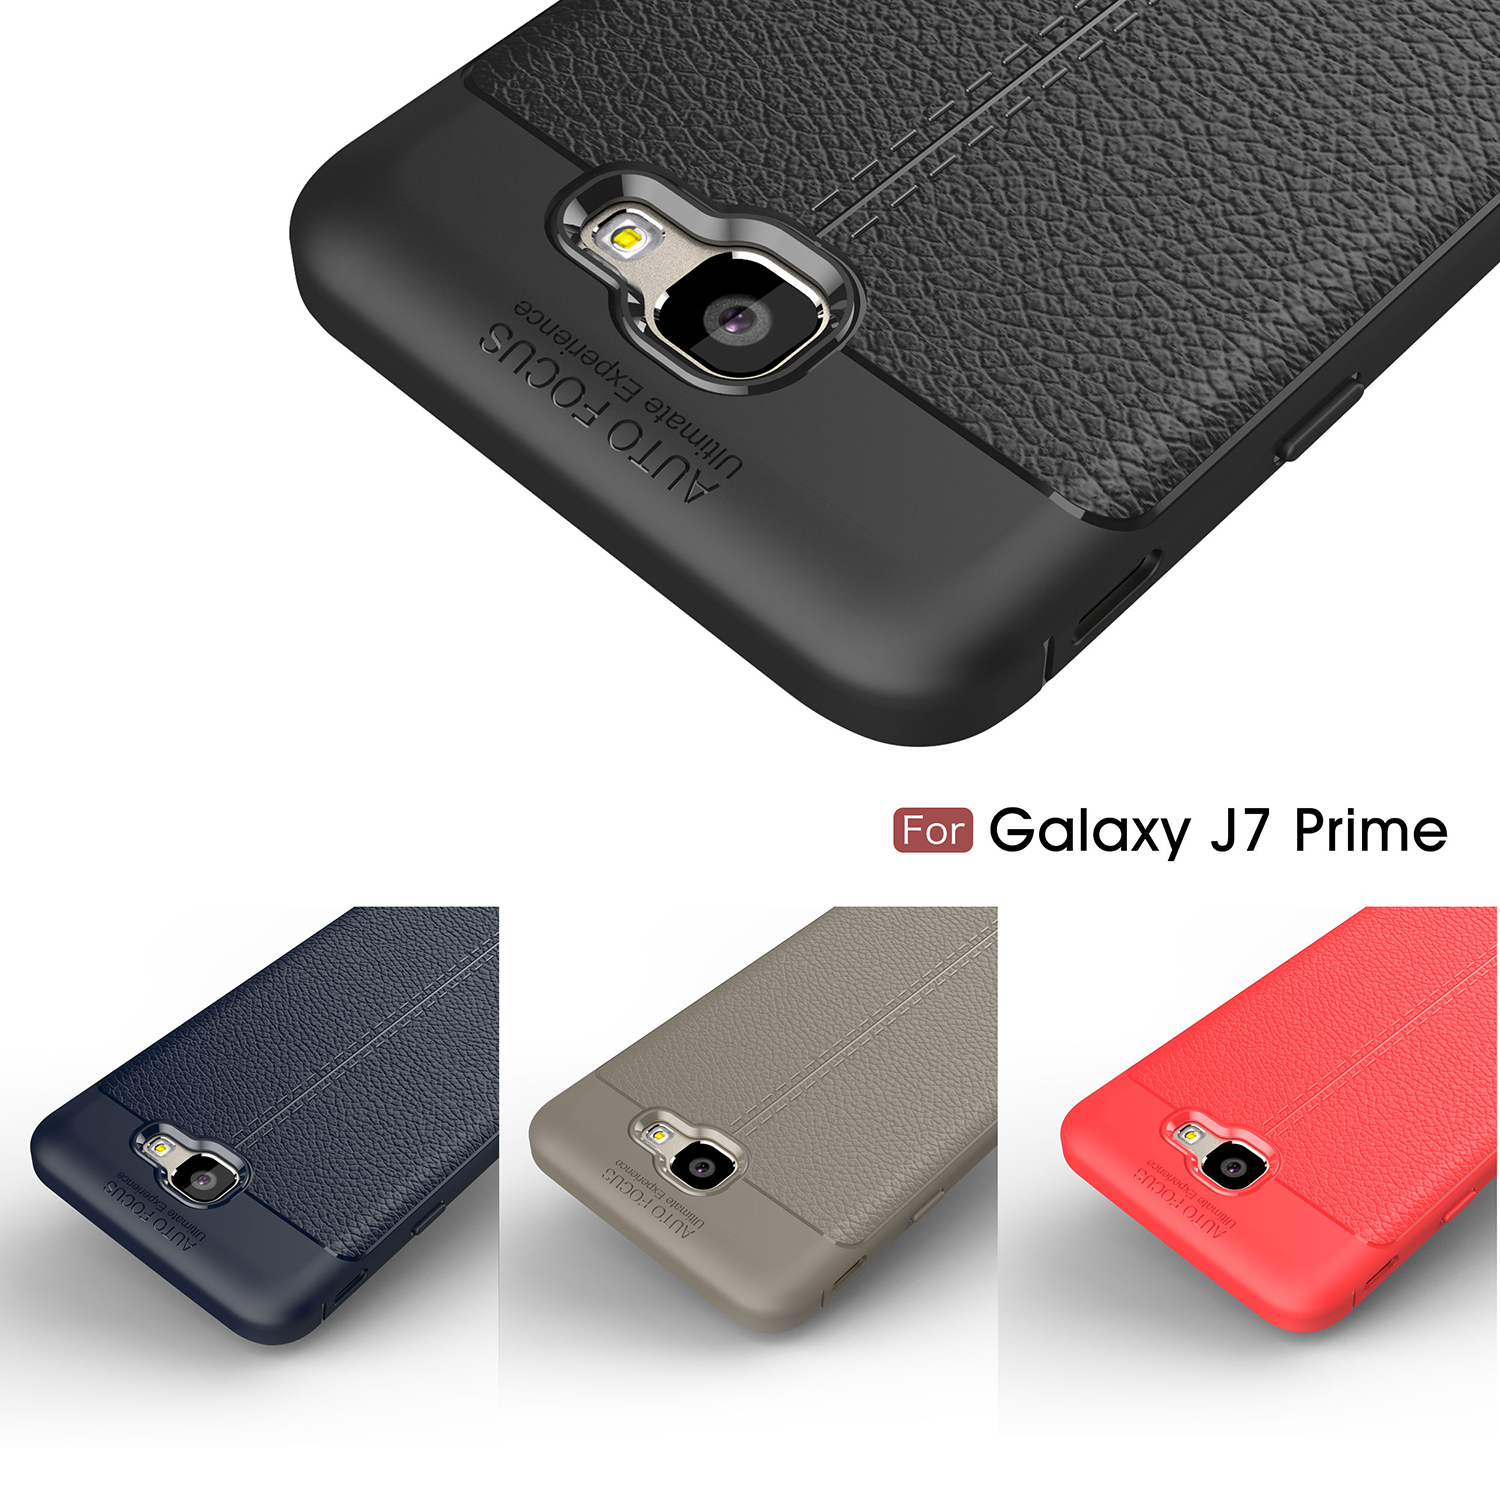 Funda Para Samsung Galaxy J7 Prime J7prime G610 G610f Ds G610m Sm Coque On7 2016 Duos Telfono Leather Flip Case Cove